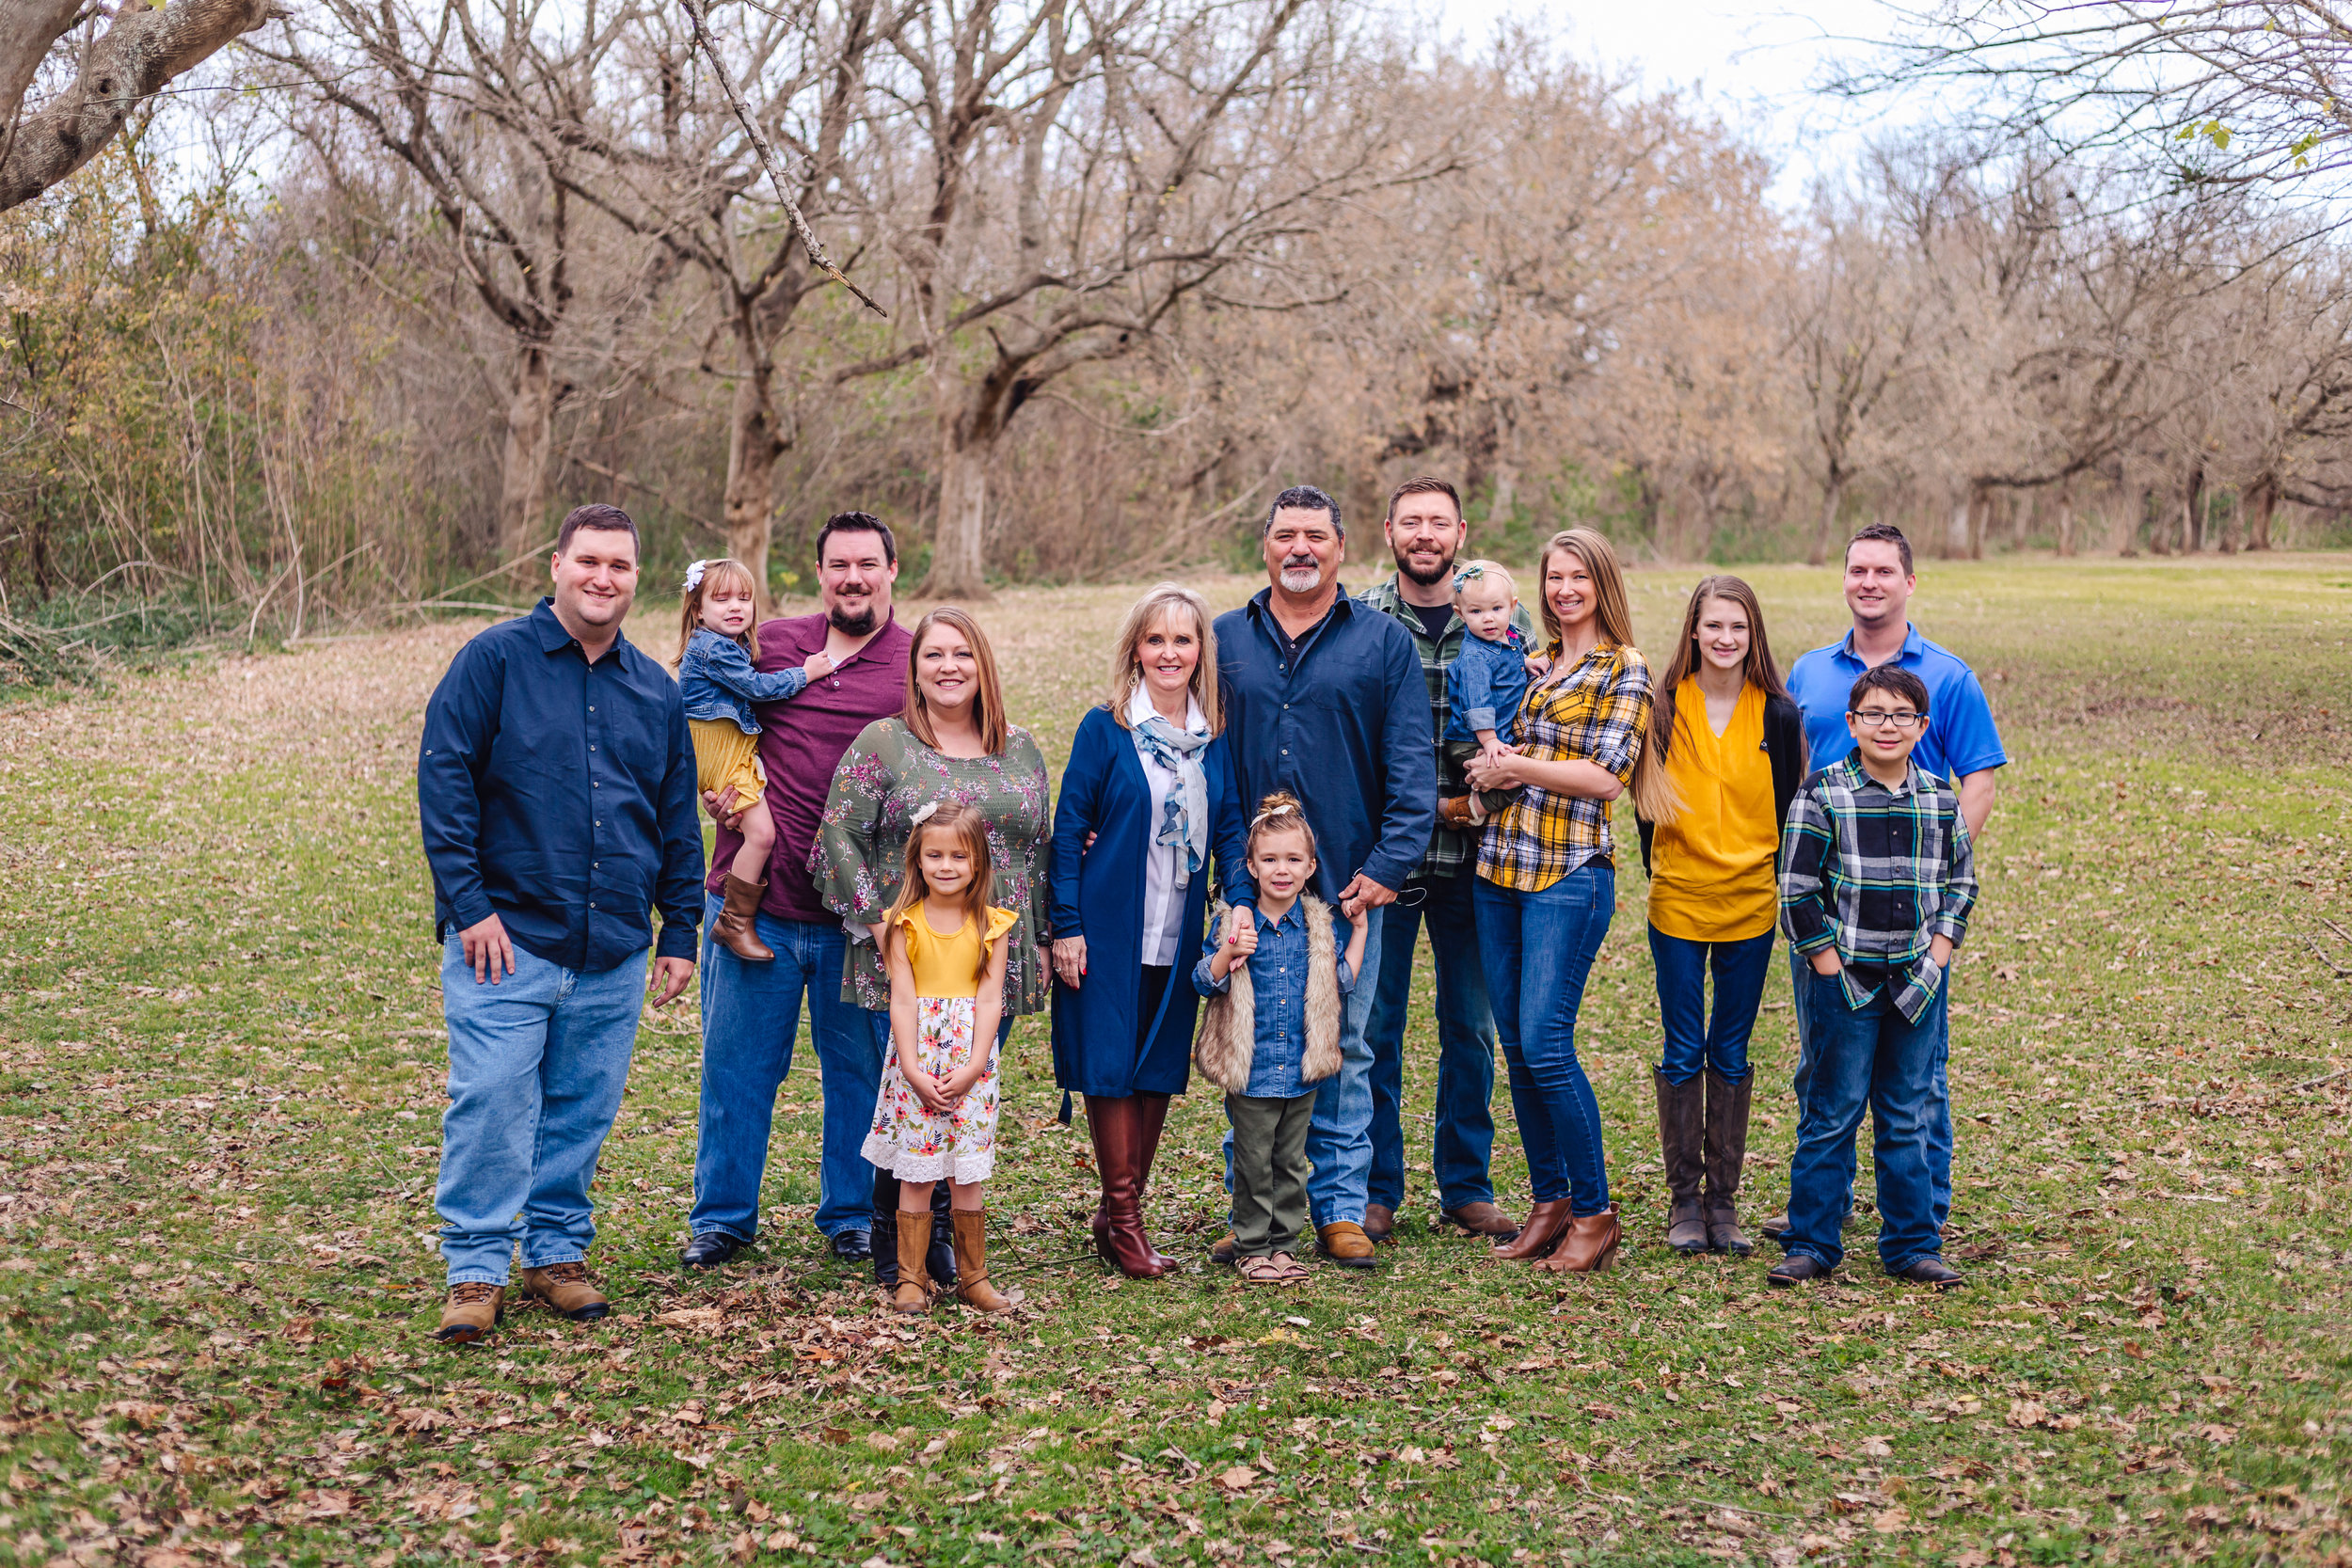 Family Sessions in Sugar Land, Texas by Zinn Photography